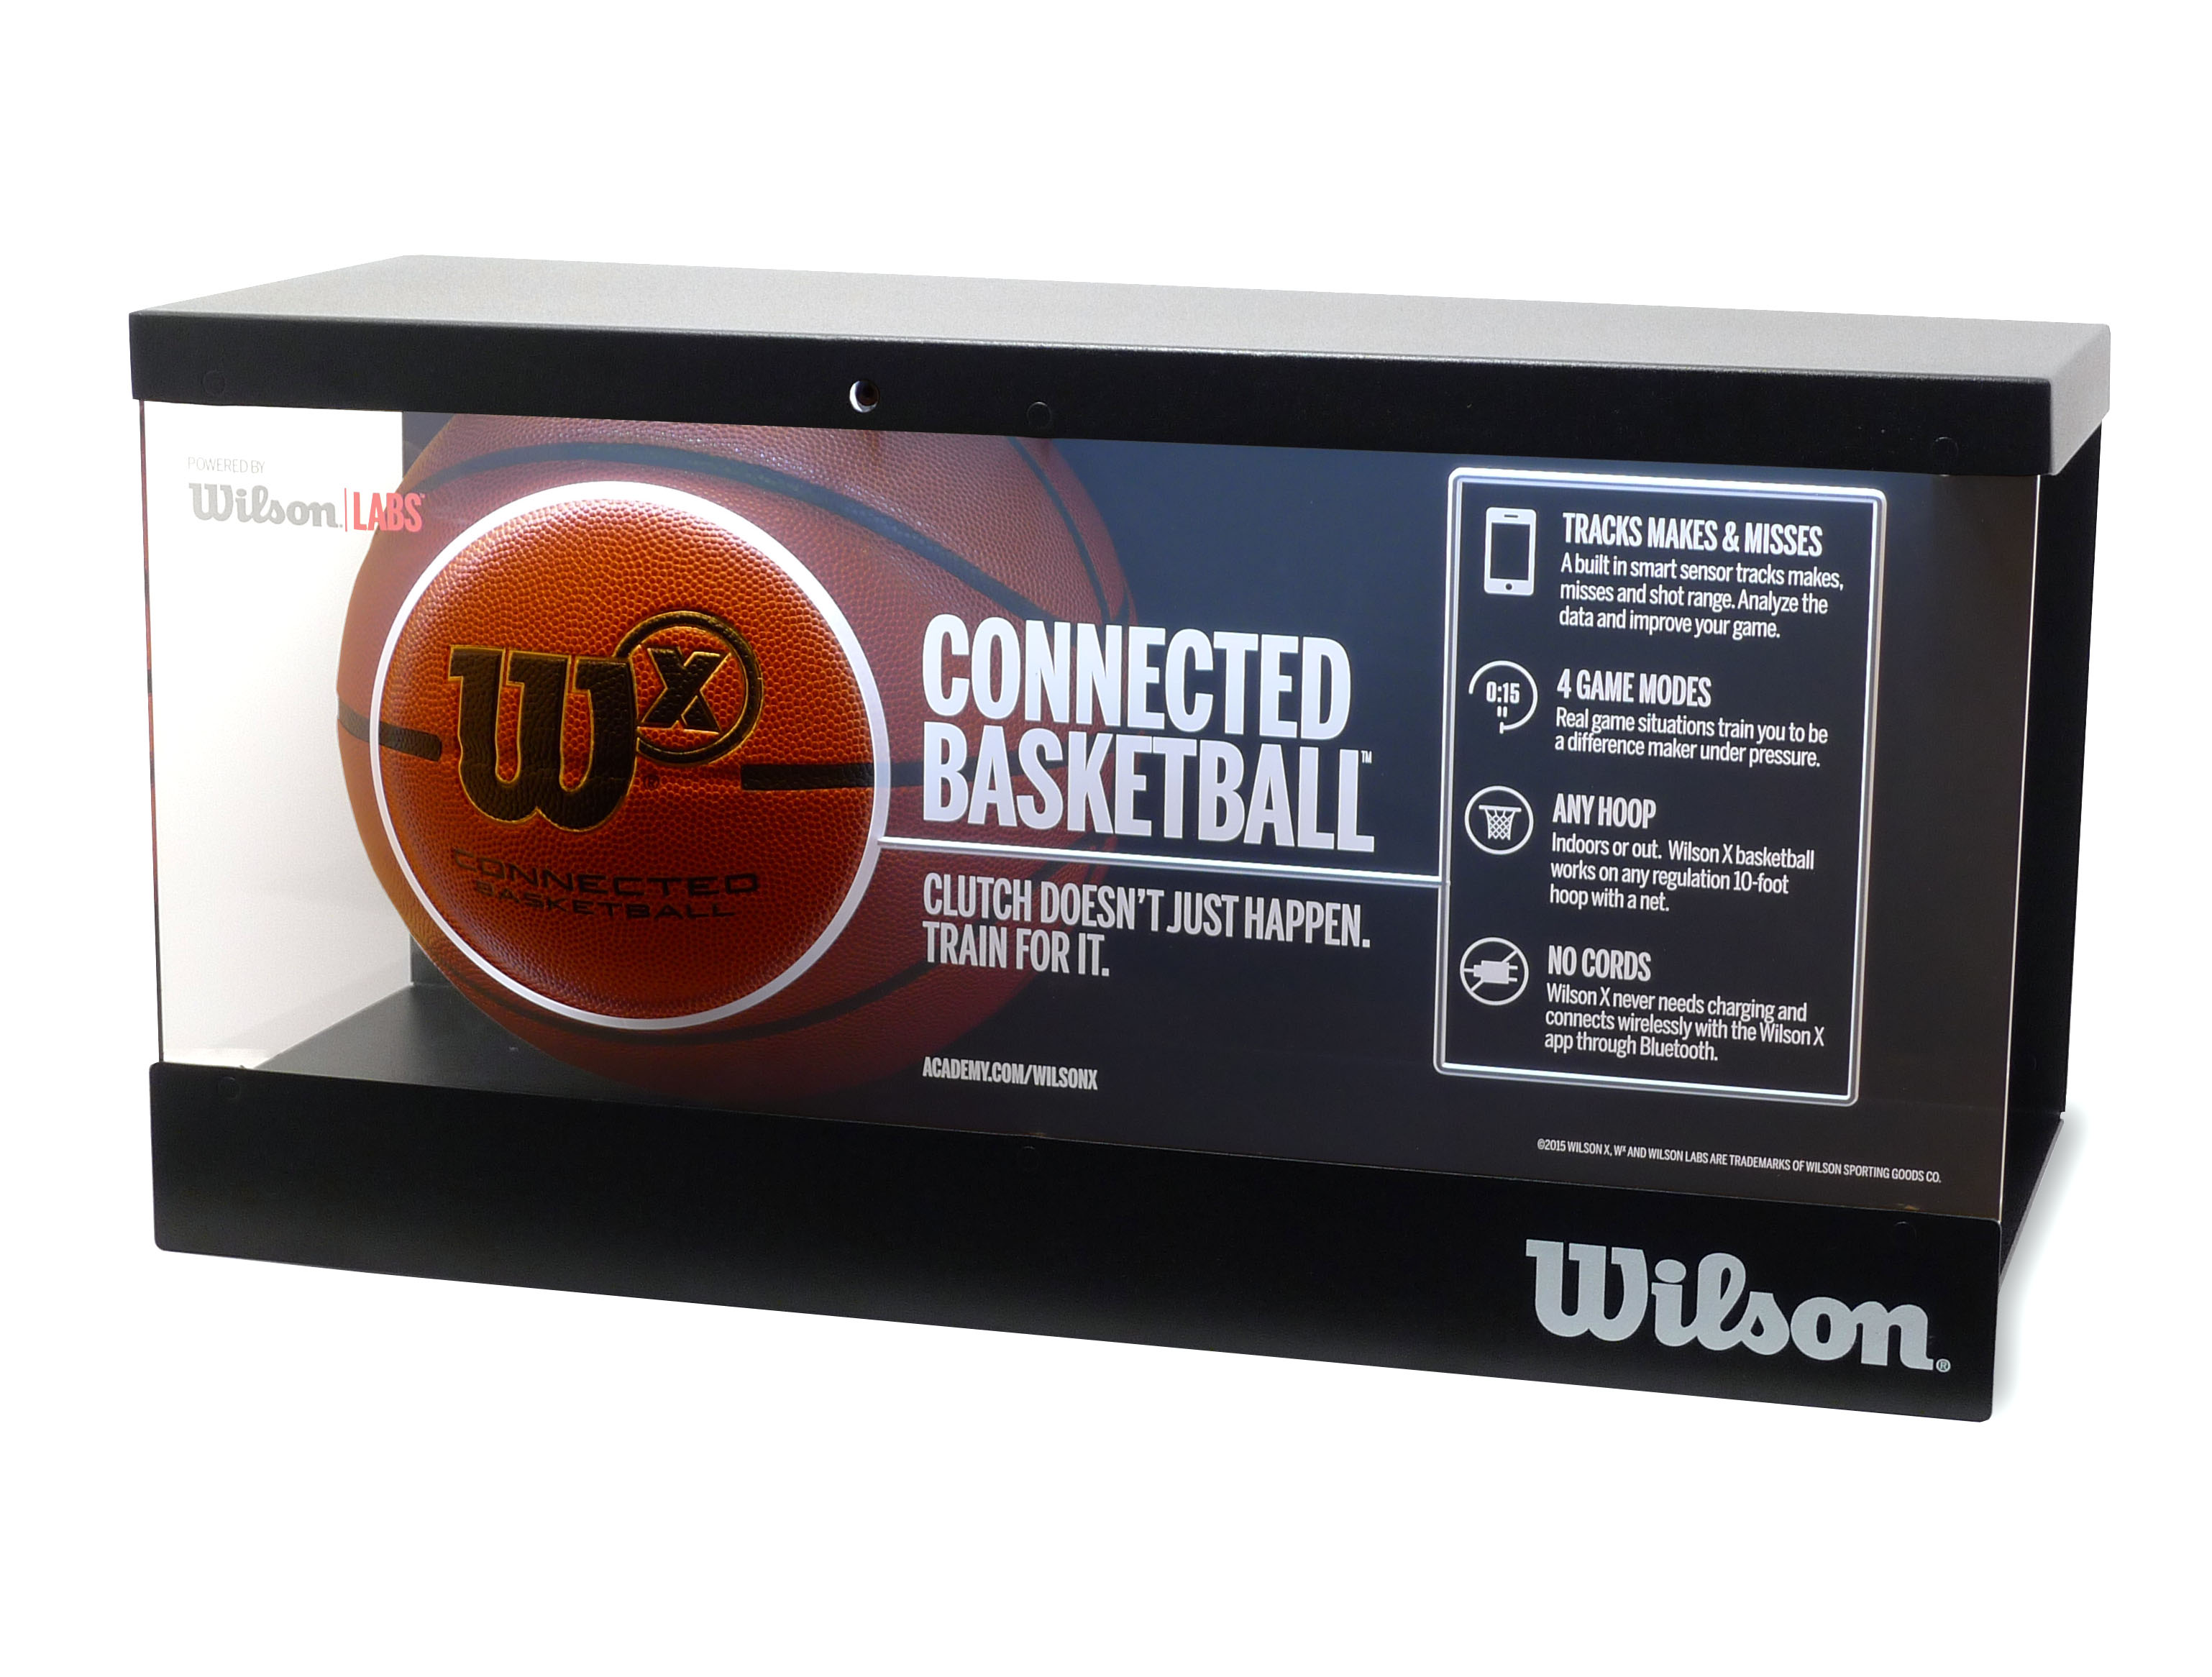 Wilson X In-Line Shelf Display with Motion Lit Acrylic Feature Benefit Display